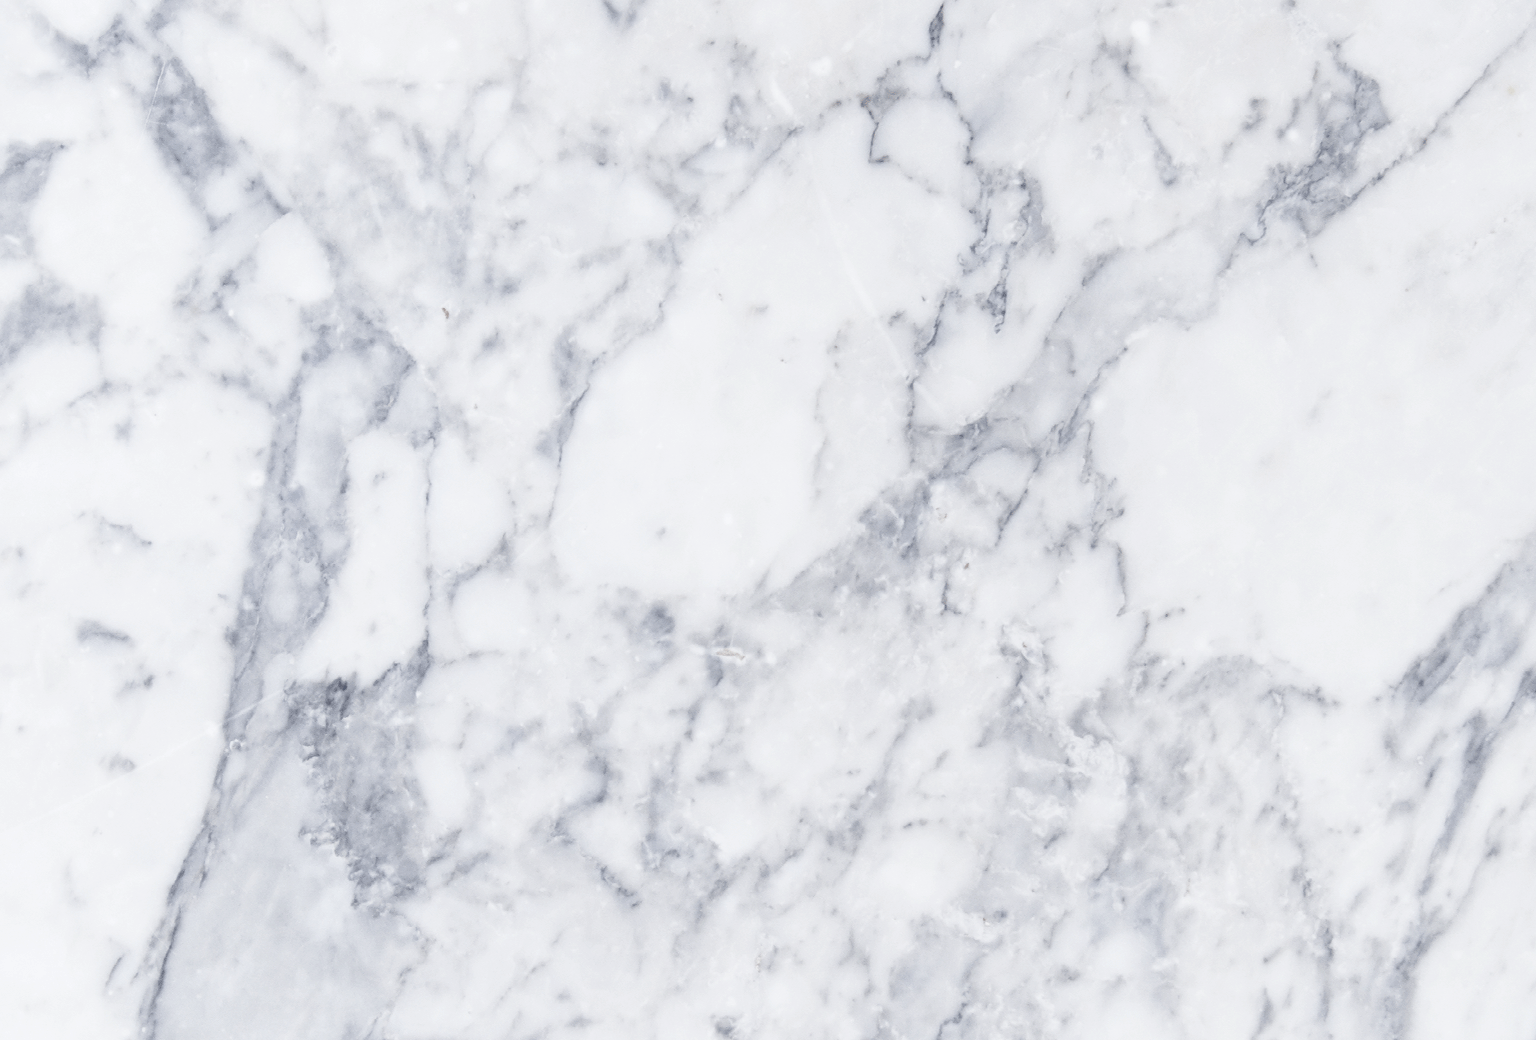 Simple Wallpaper Marble Imac - 743a26da2b89f72198339ff19e0fea20  Best Photo Reference_477454.png